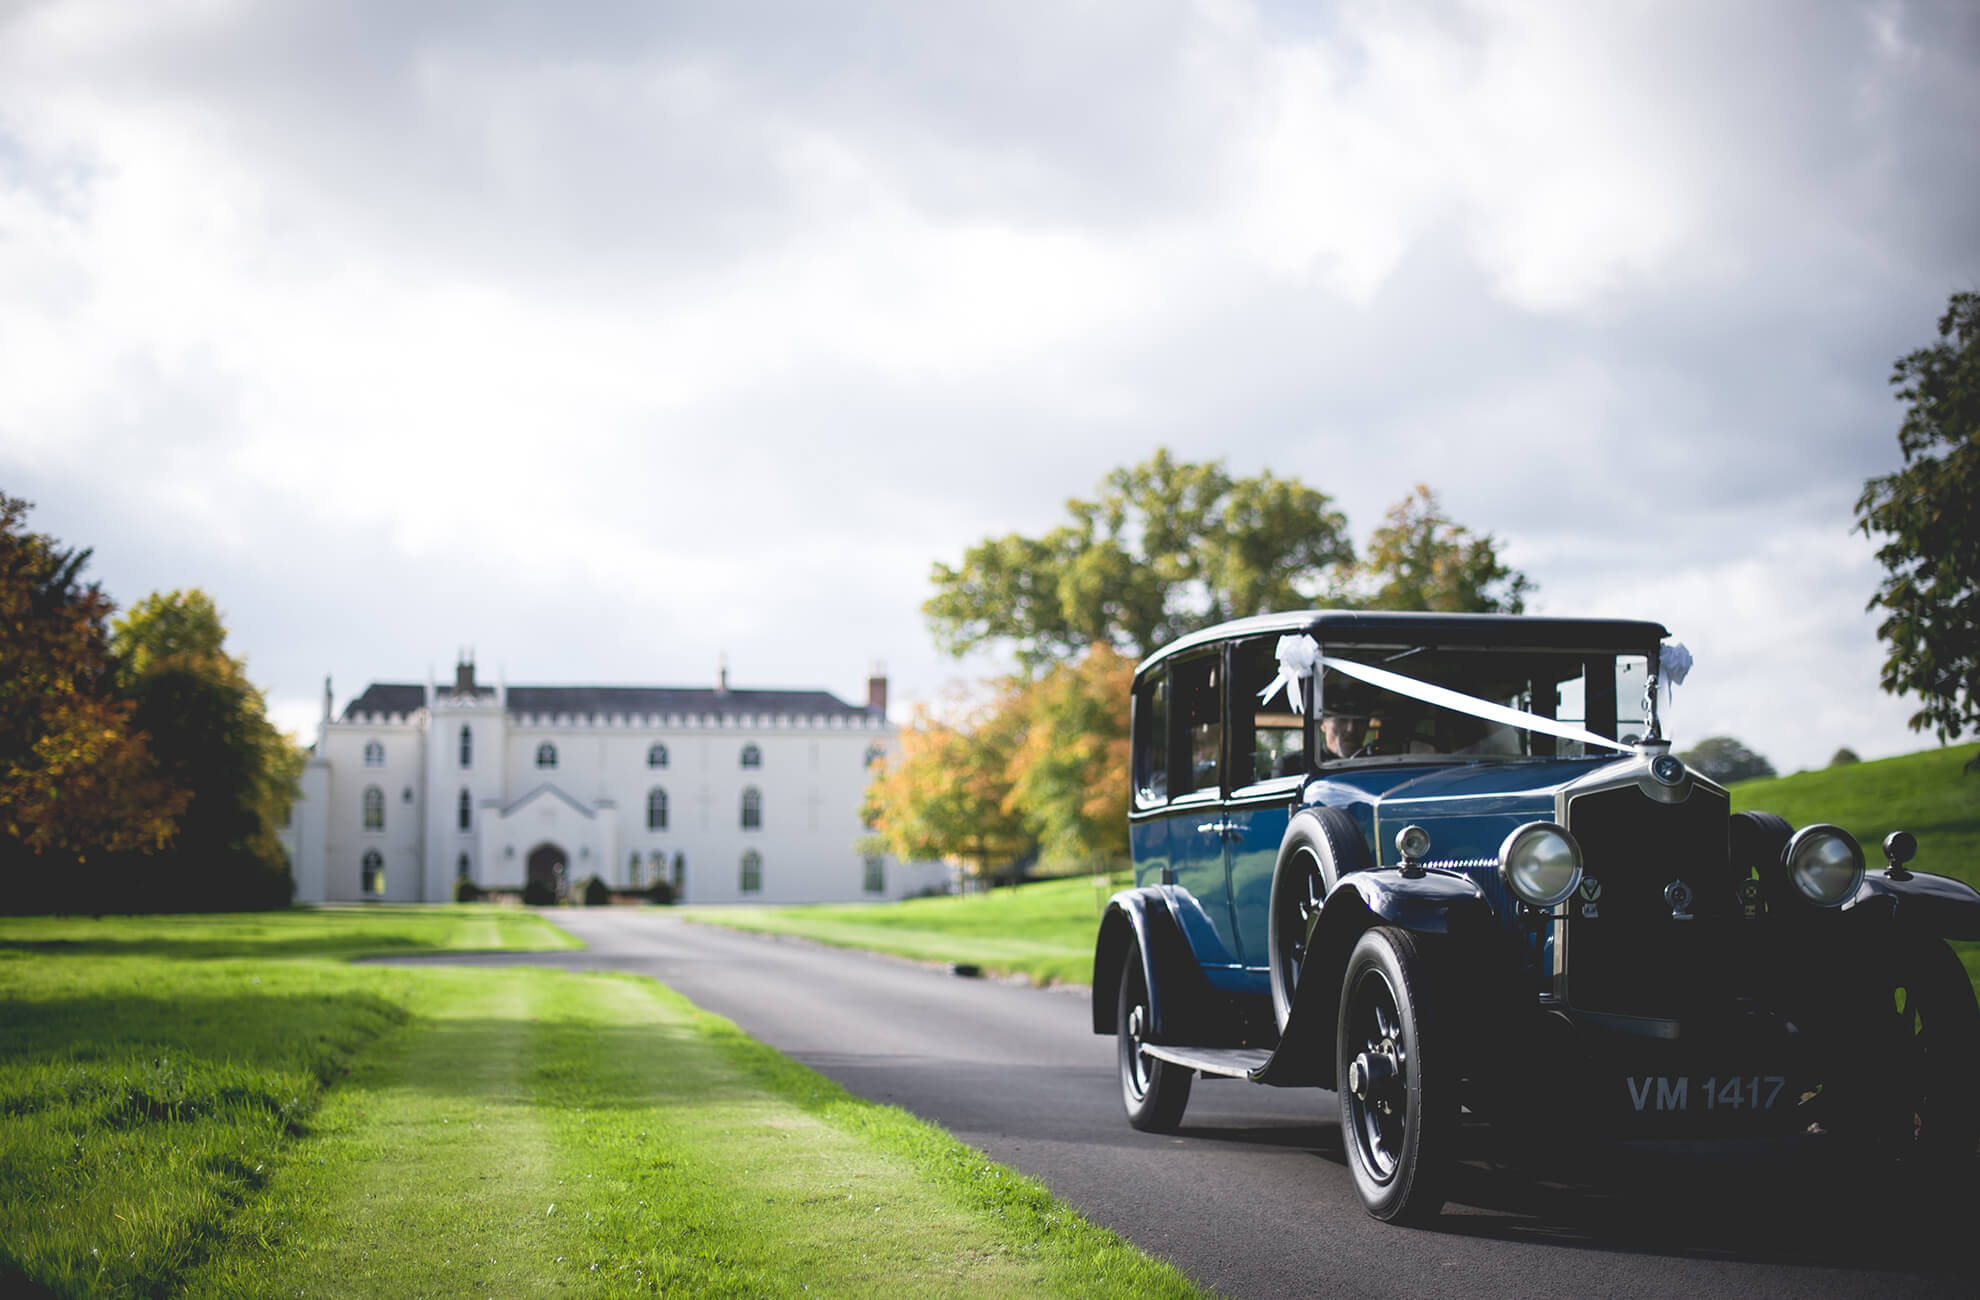 Begin your wedding day with a vintage car-ride up the mile-long driveway at Combermere Abbey in Cheshire